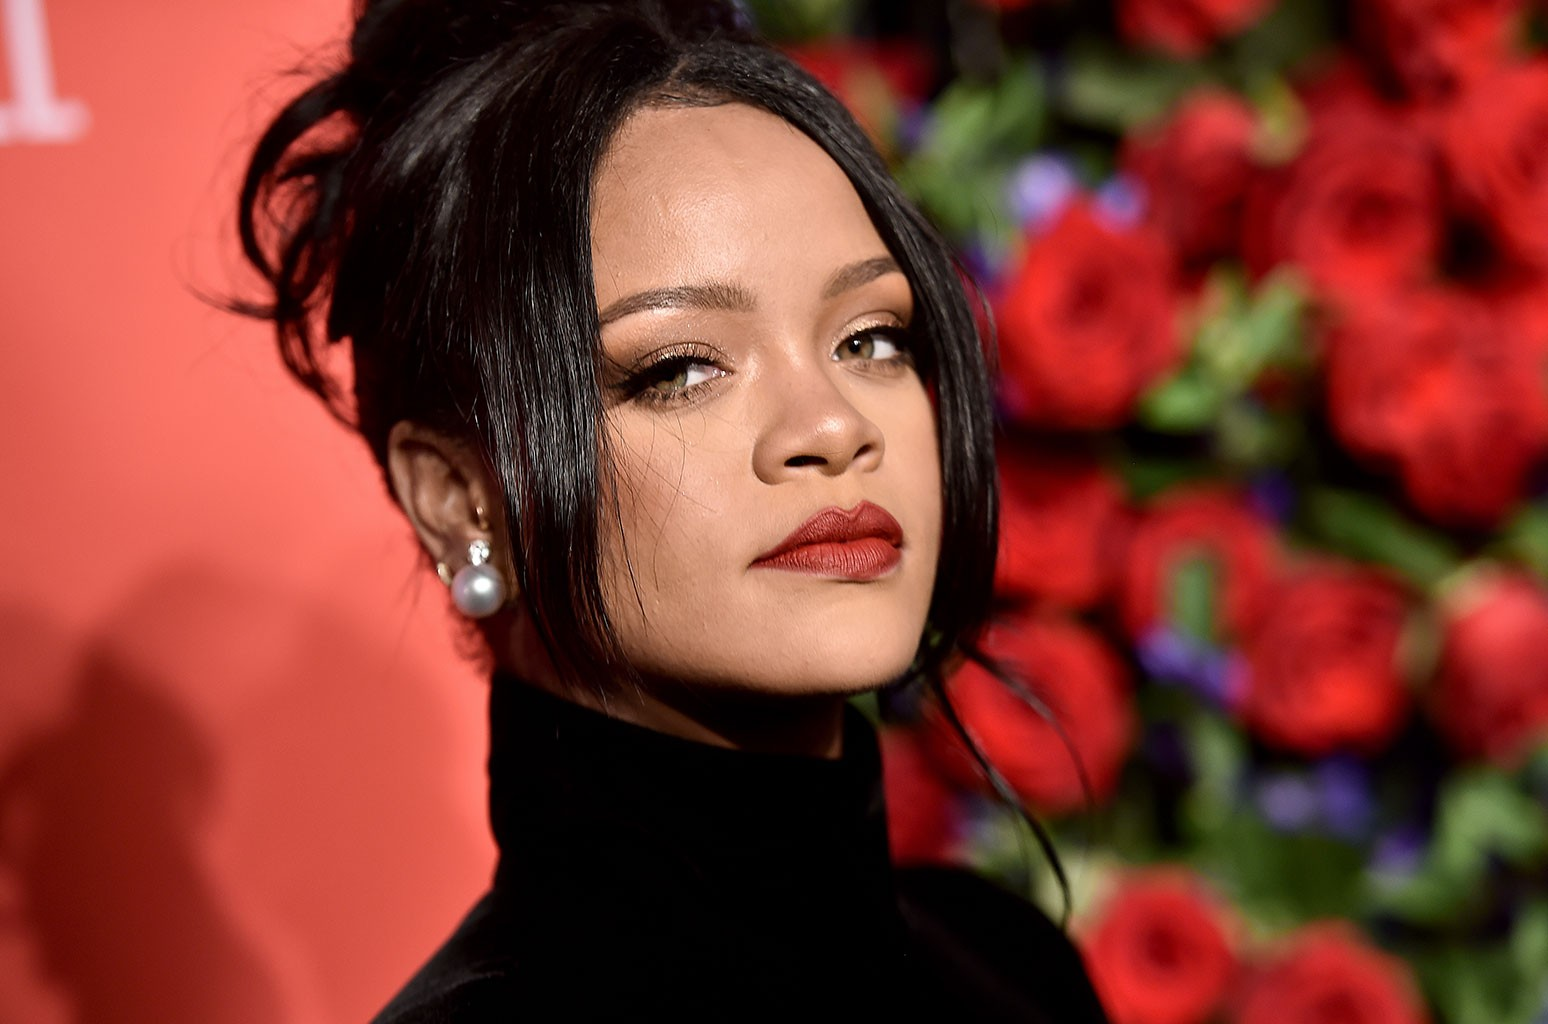 rihanna-sept-2019-billboard-1548-1611156420-compressed